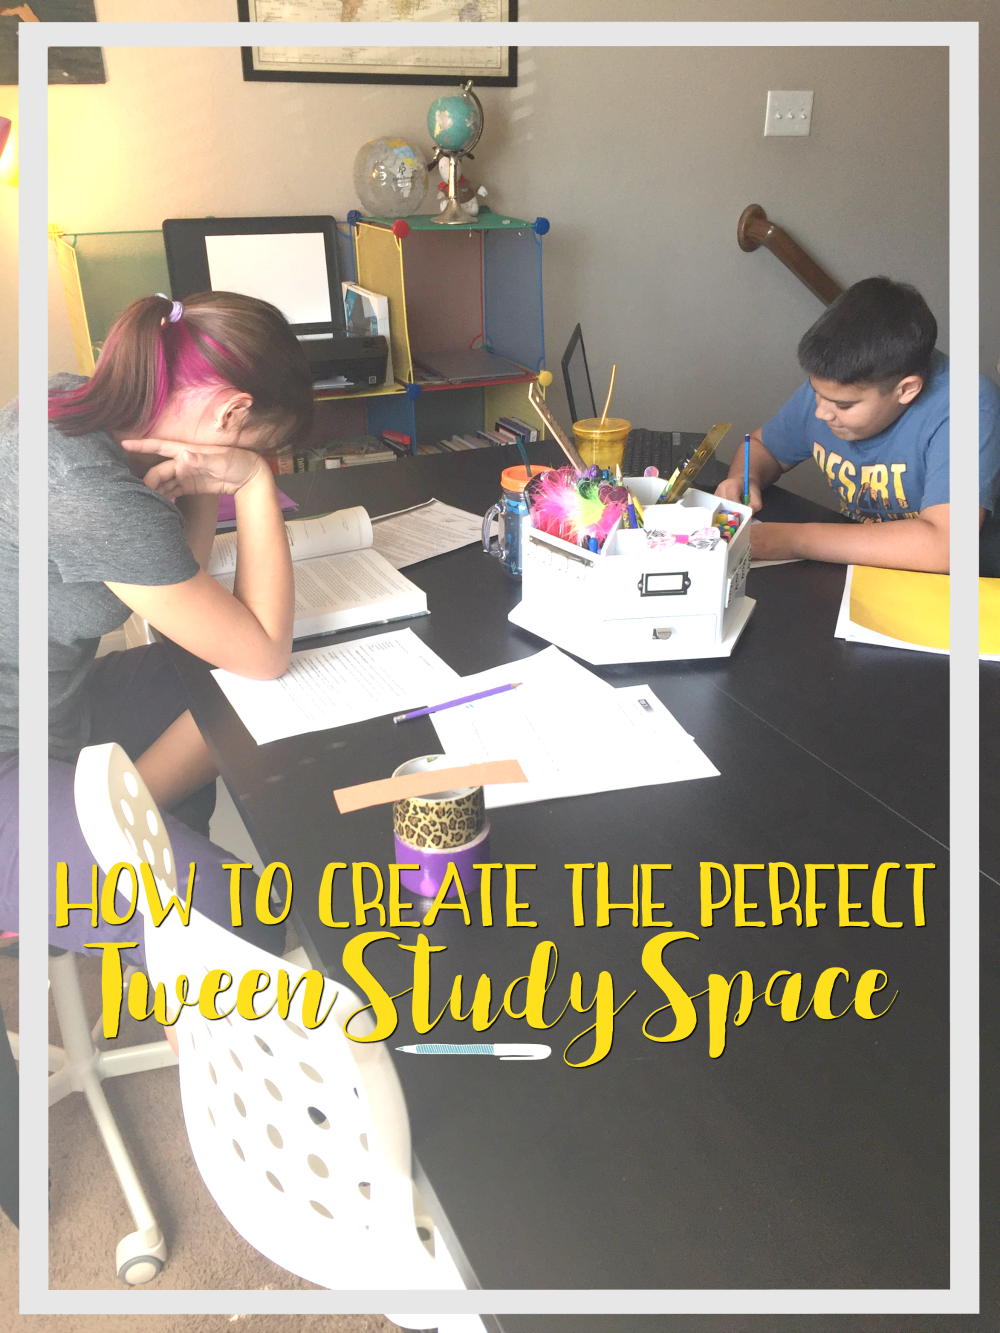 Learn how to creae the perfect tween study space for your child with these four easy steps.